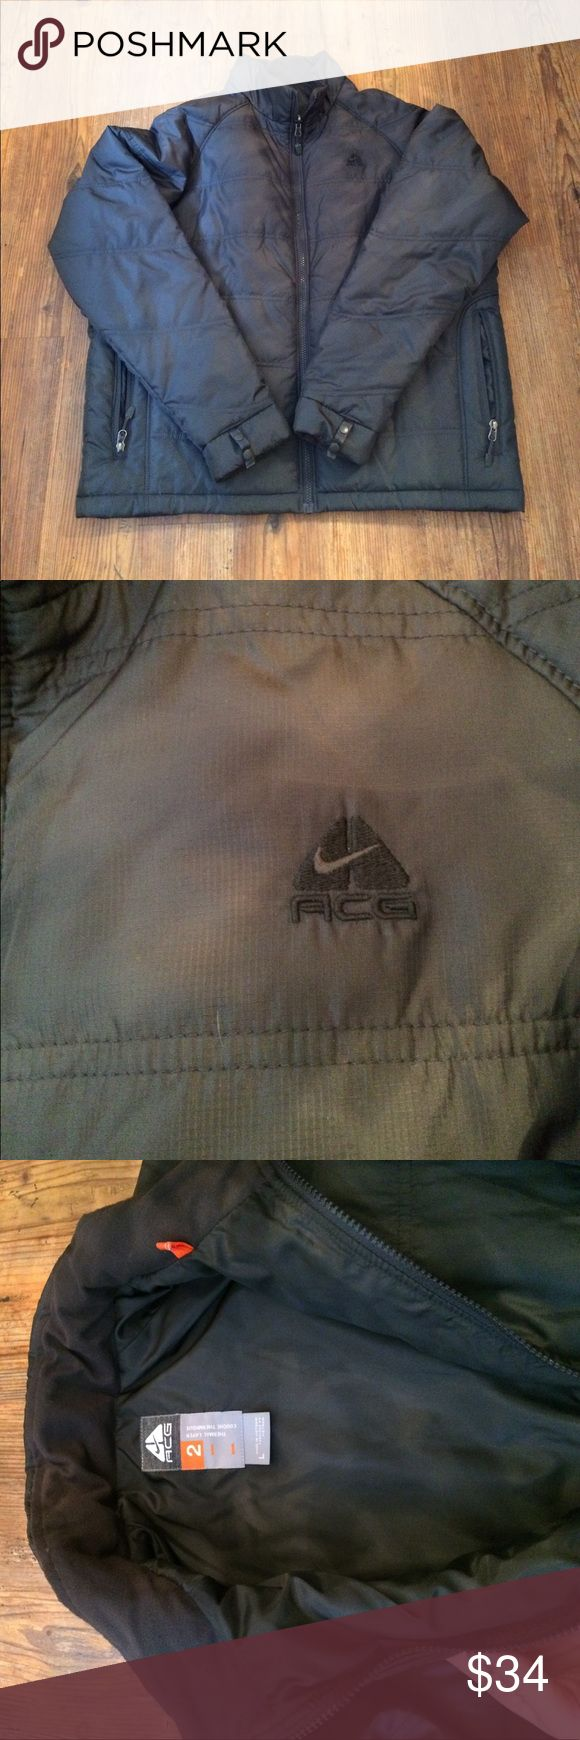 Nike ACG thermal layer (layer 2) Like new! Nike ACG thermal layer puffer coat. Layer 2 in the ACG system. zippers and snaps into layer three which I also have listed. So if you have both layer two and three it's like having three coats in one! Nike ACG Jackets & Coats Puffers